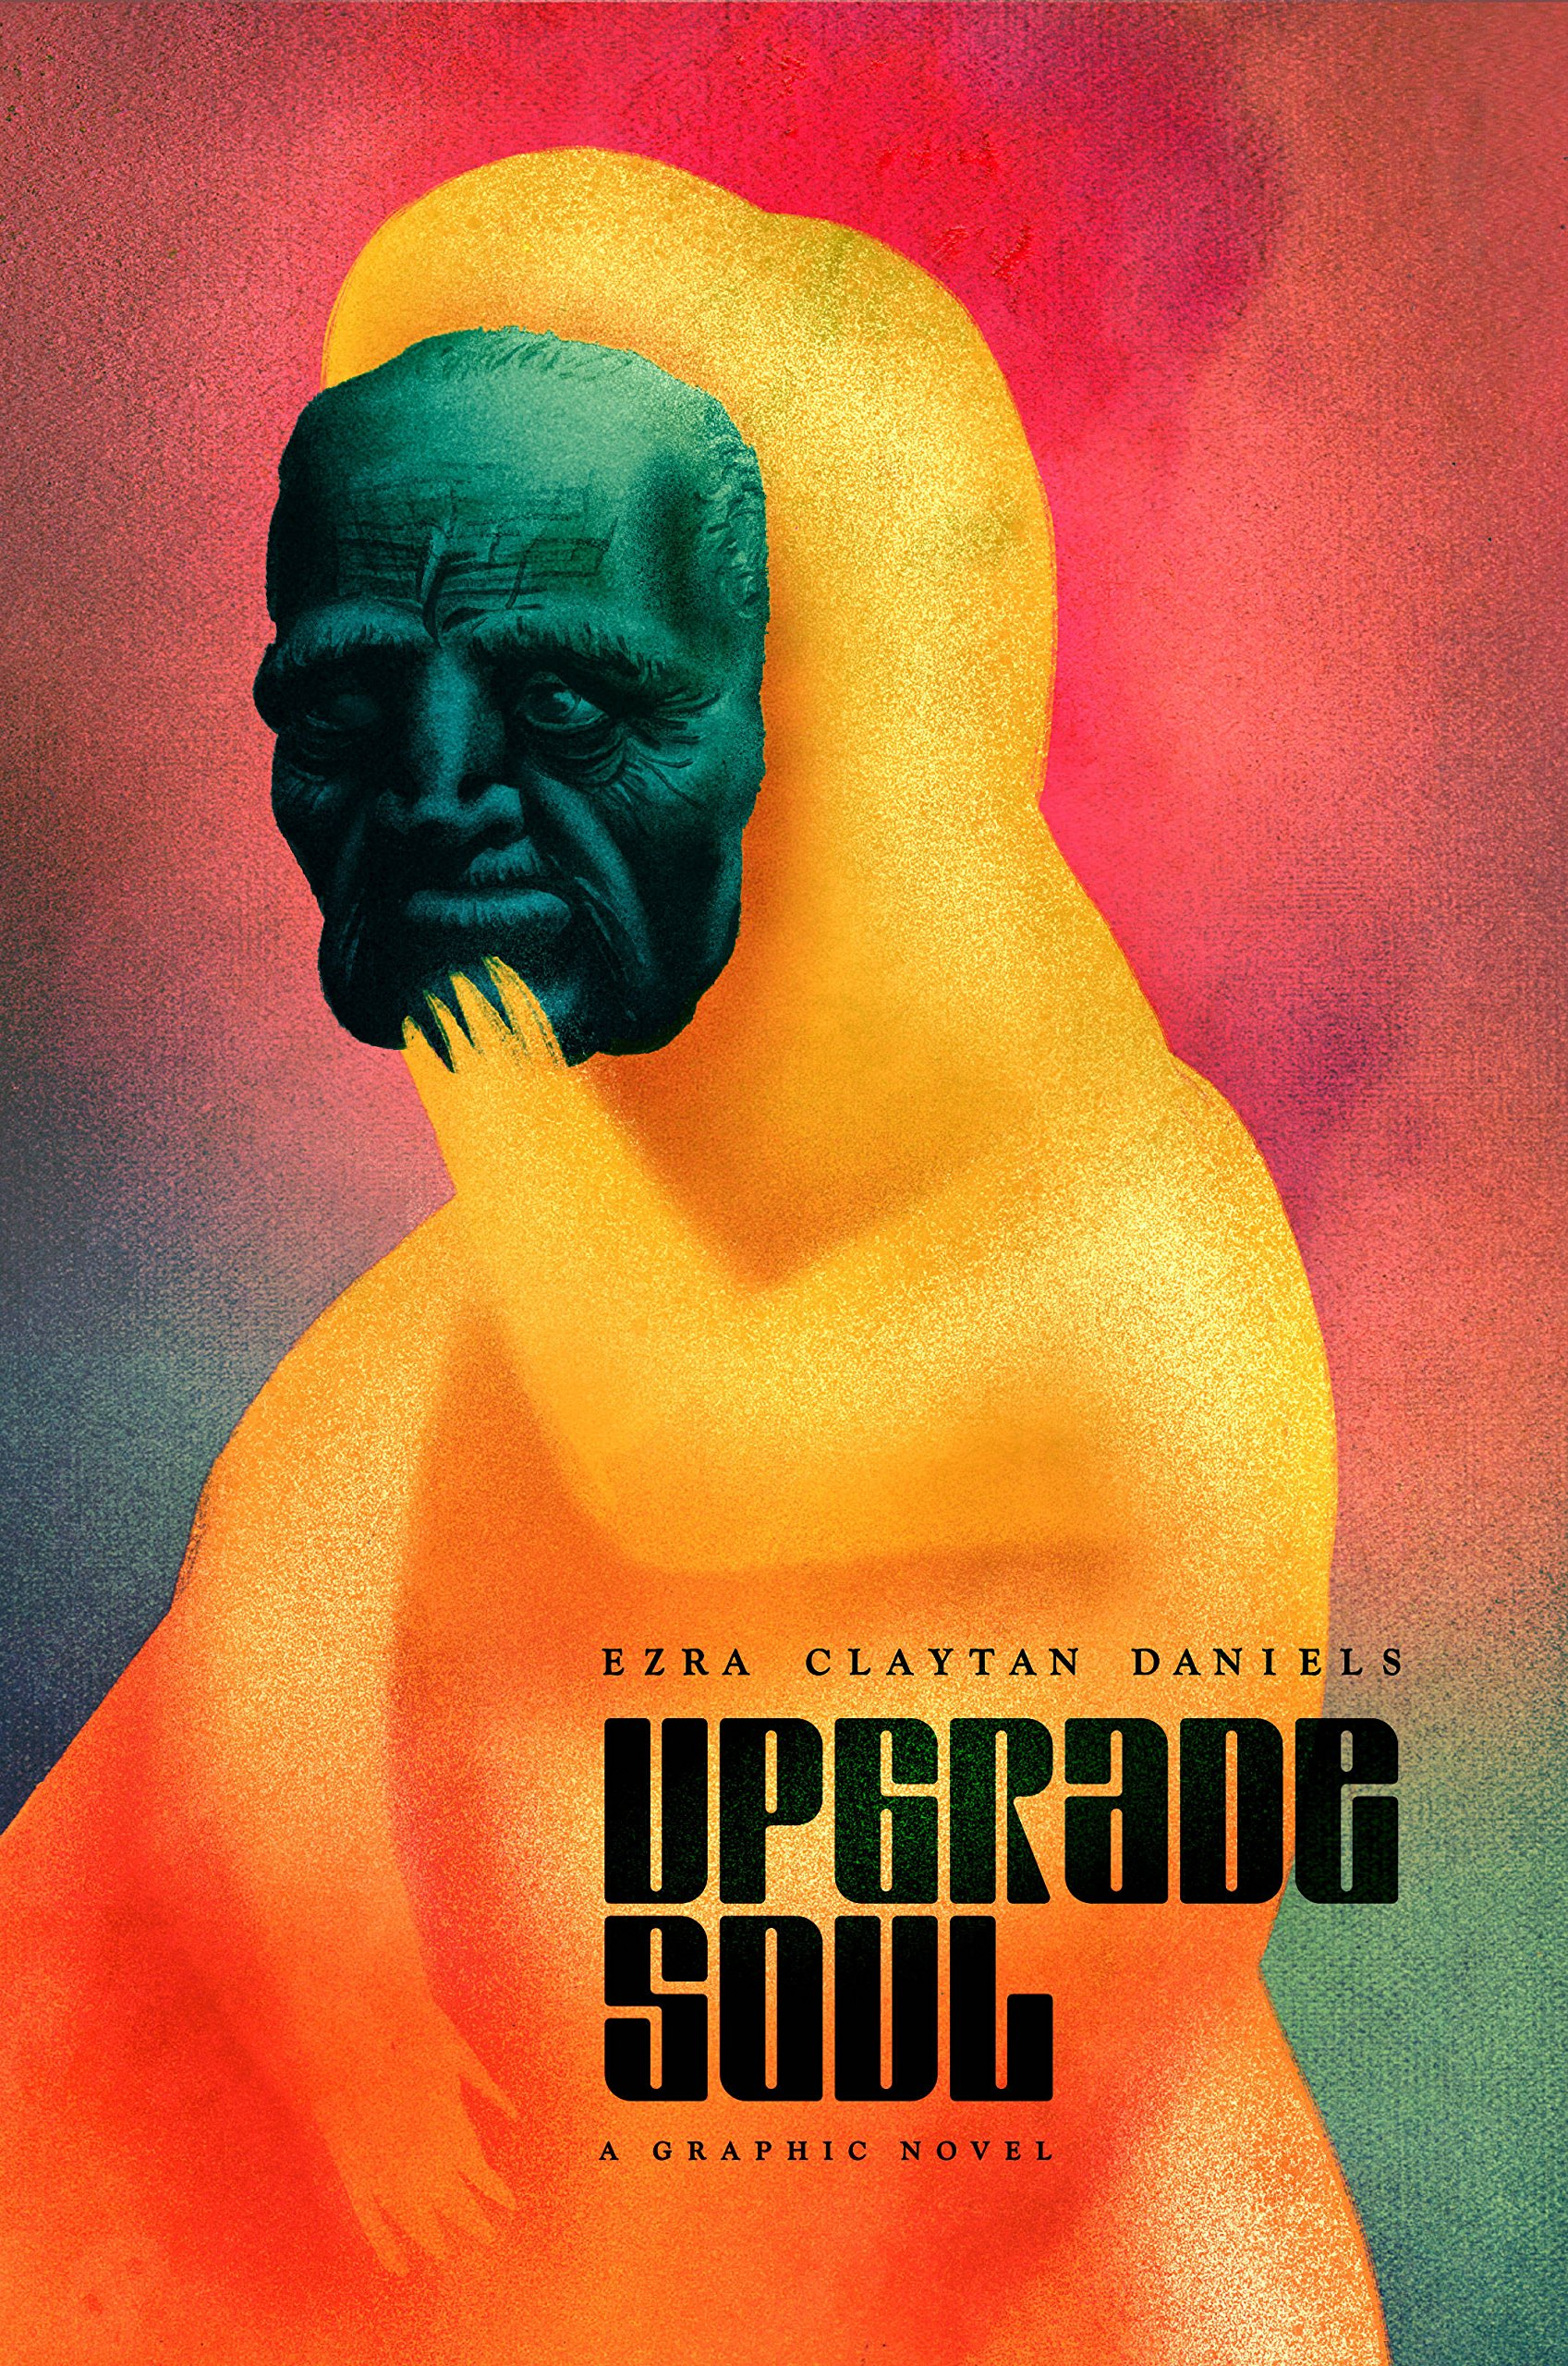 Upgrade Soul by Ezra Claytan Daniels